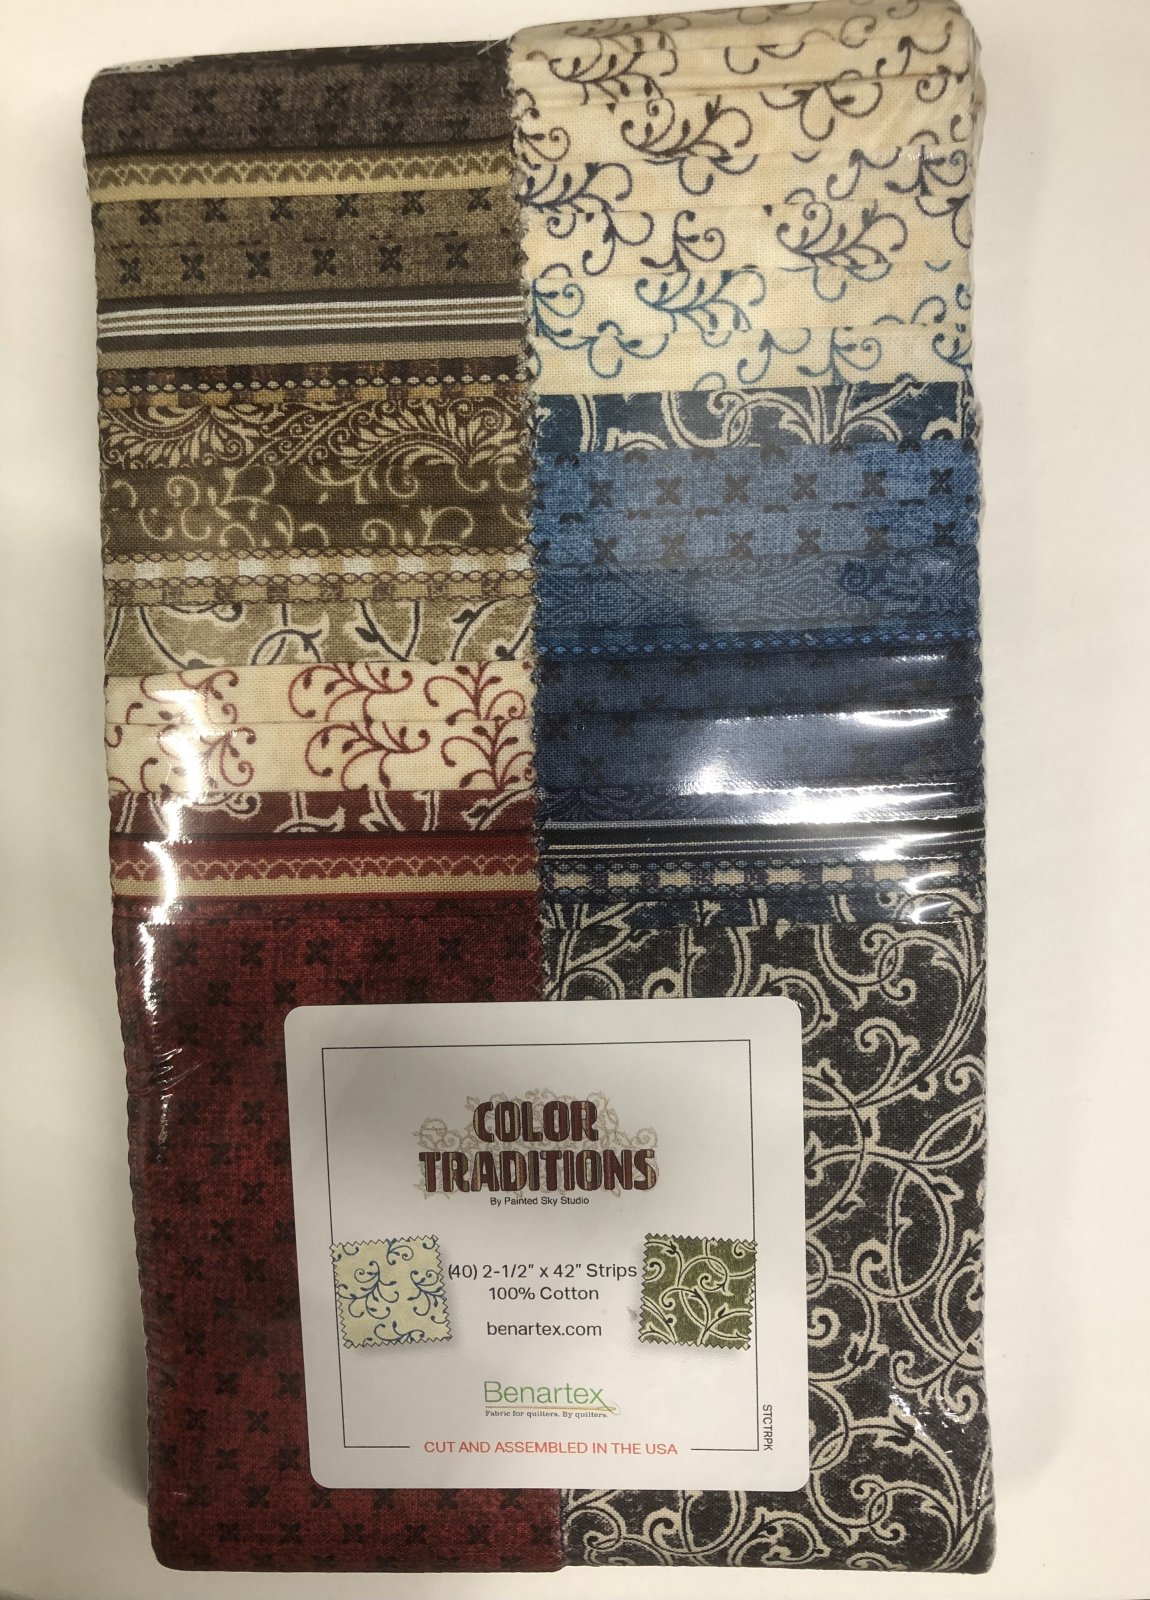 2.5 inch STRIPS:  Color Traditions by Benartex - 40 piece 2.5 inch Fabric Strips Flat Pack